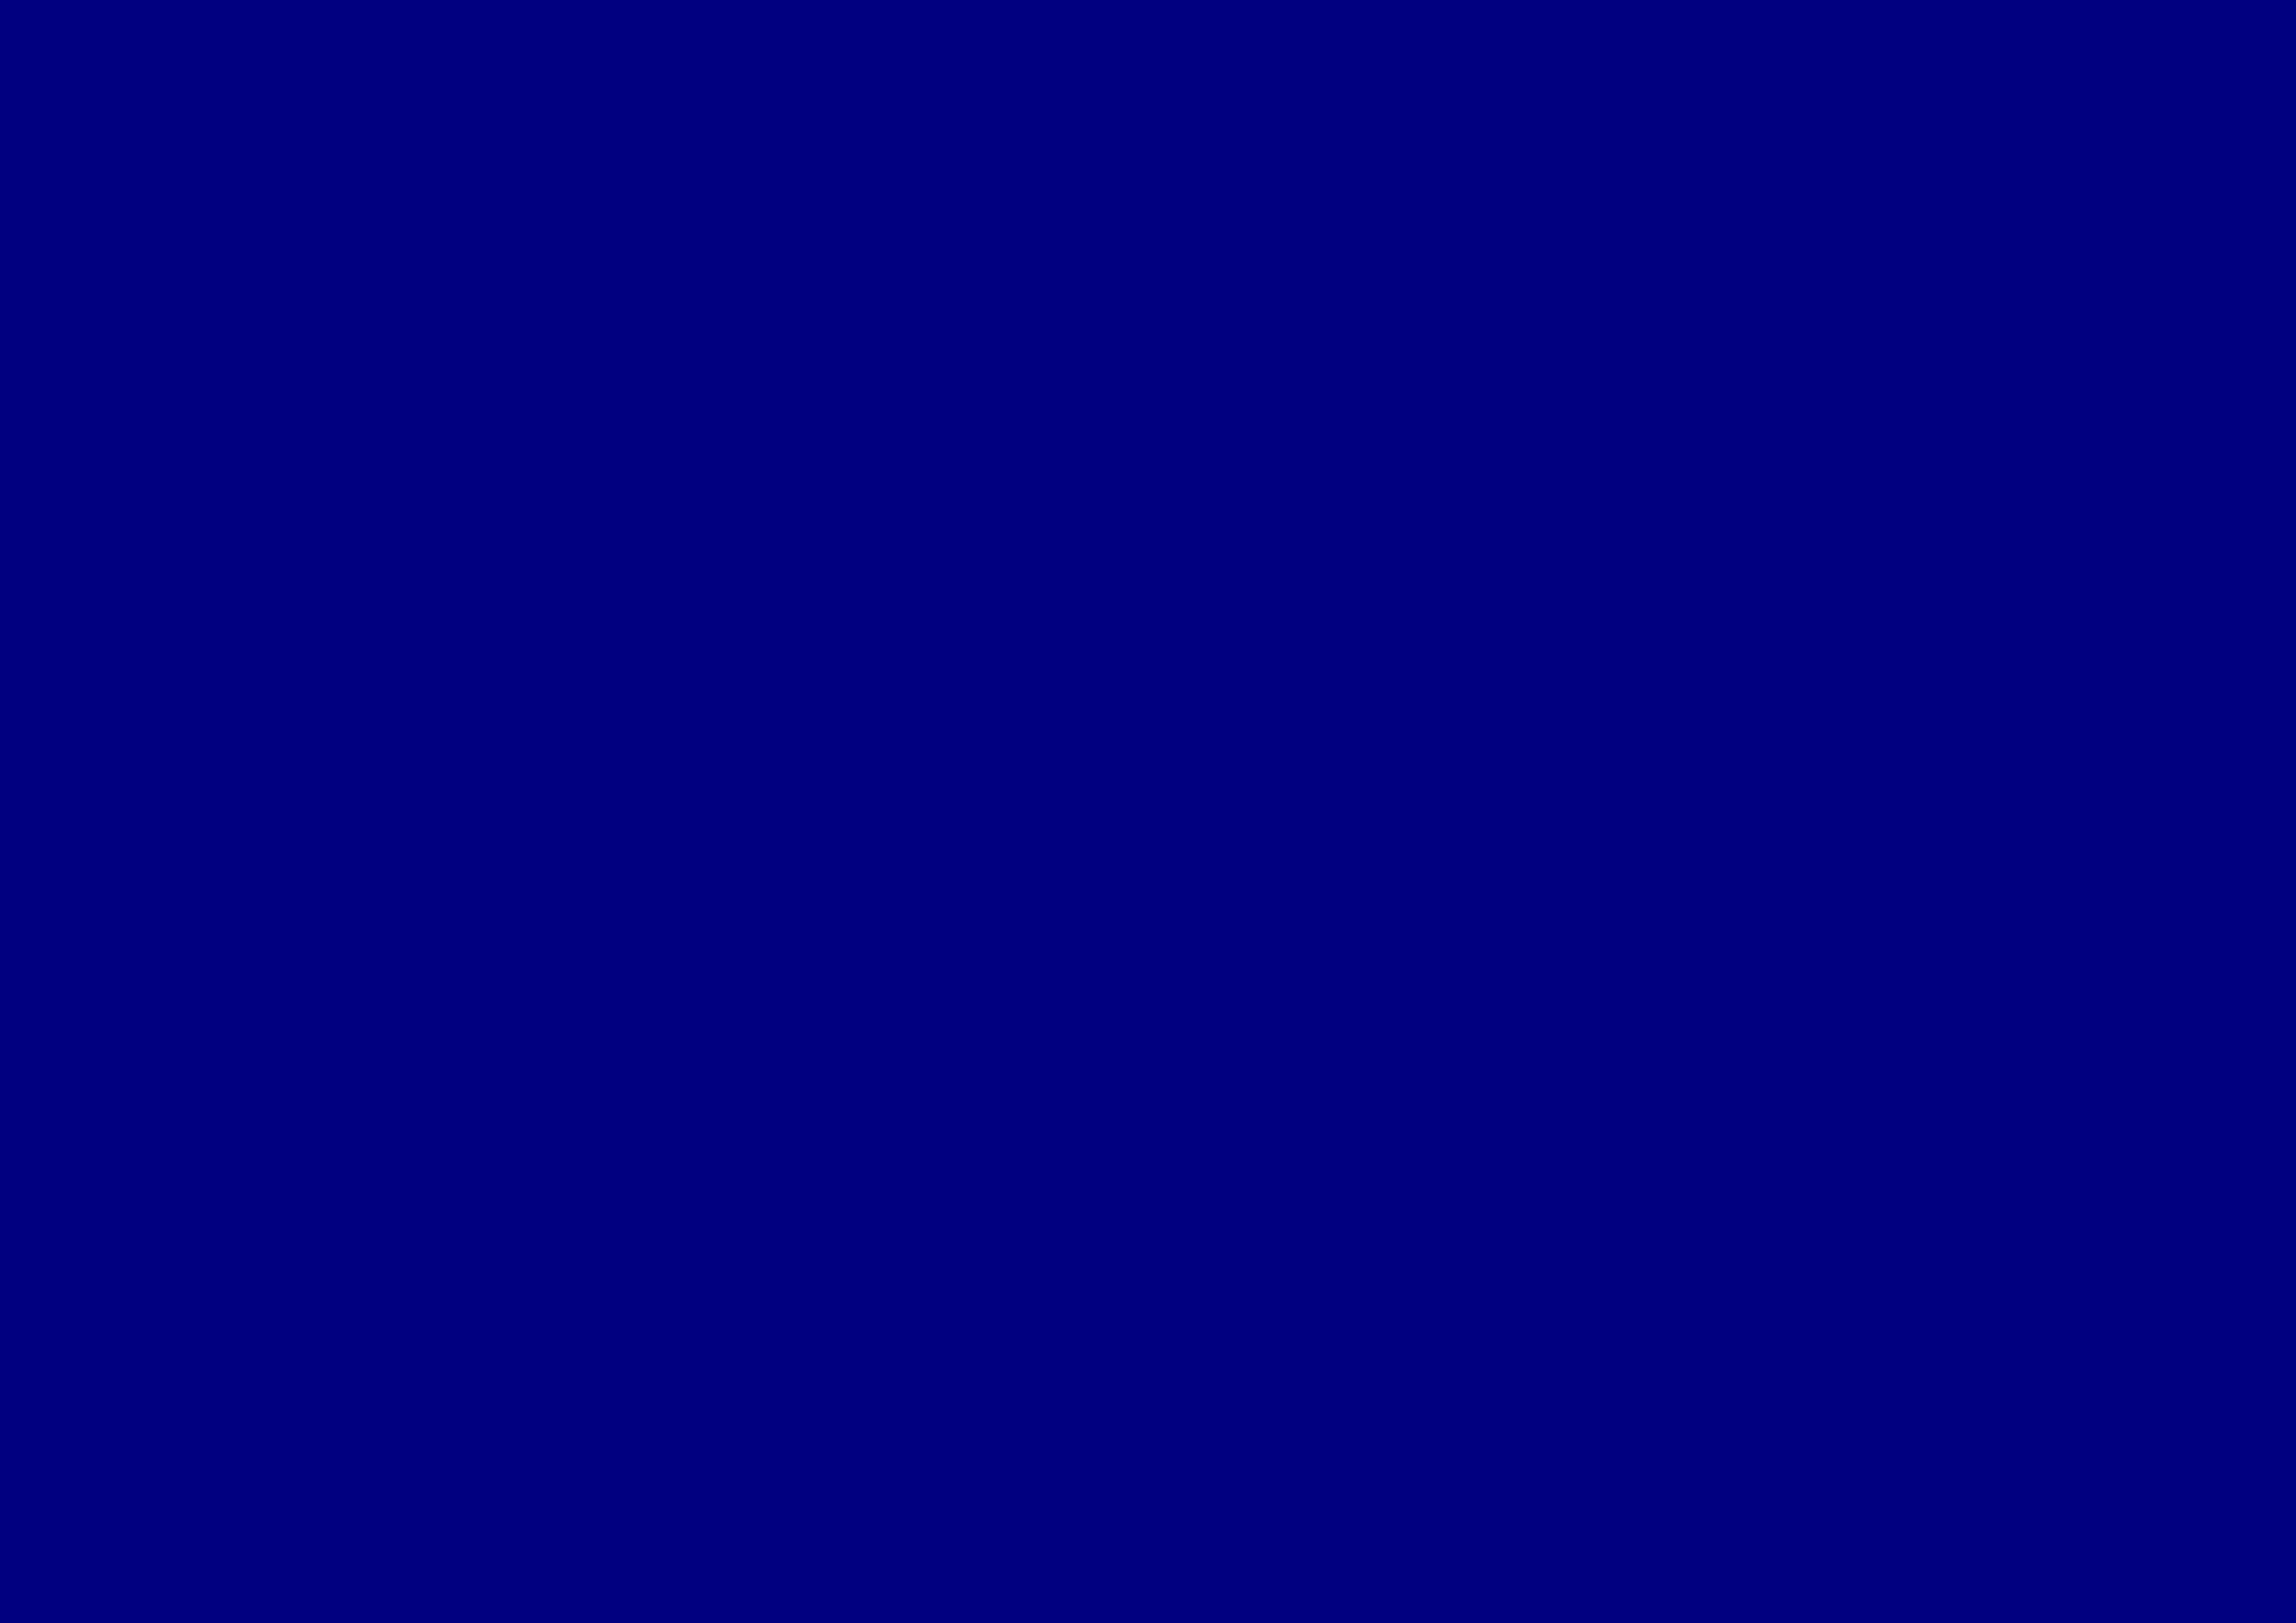 3508x2480 Navy Blue Solid Color Background